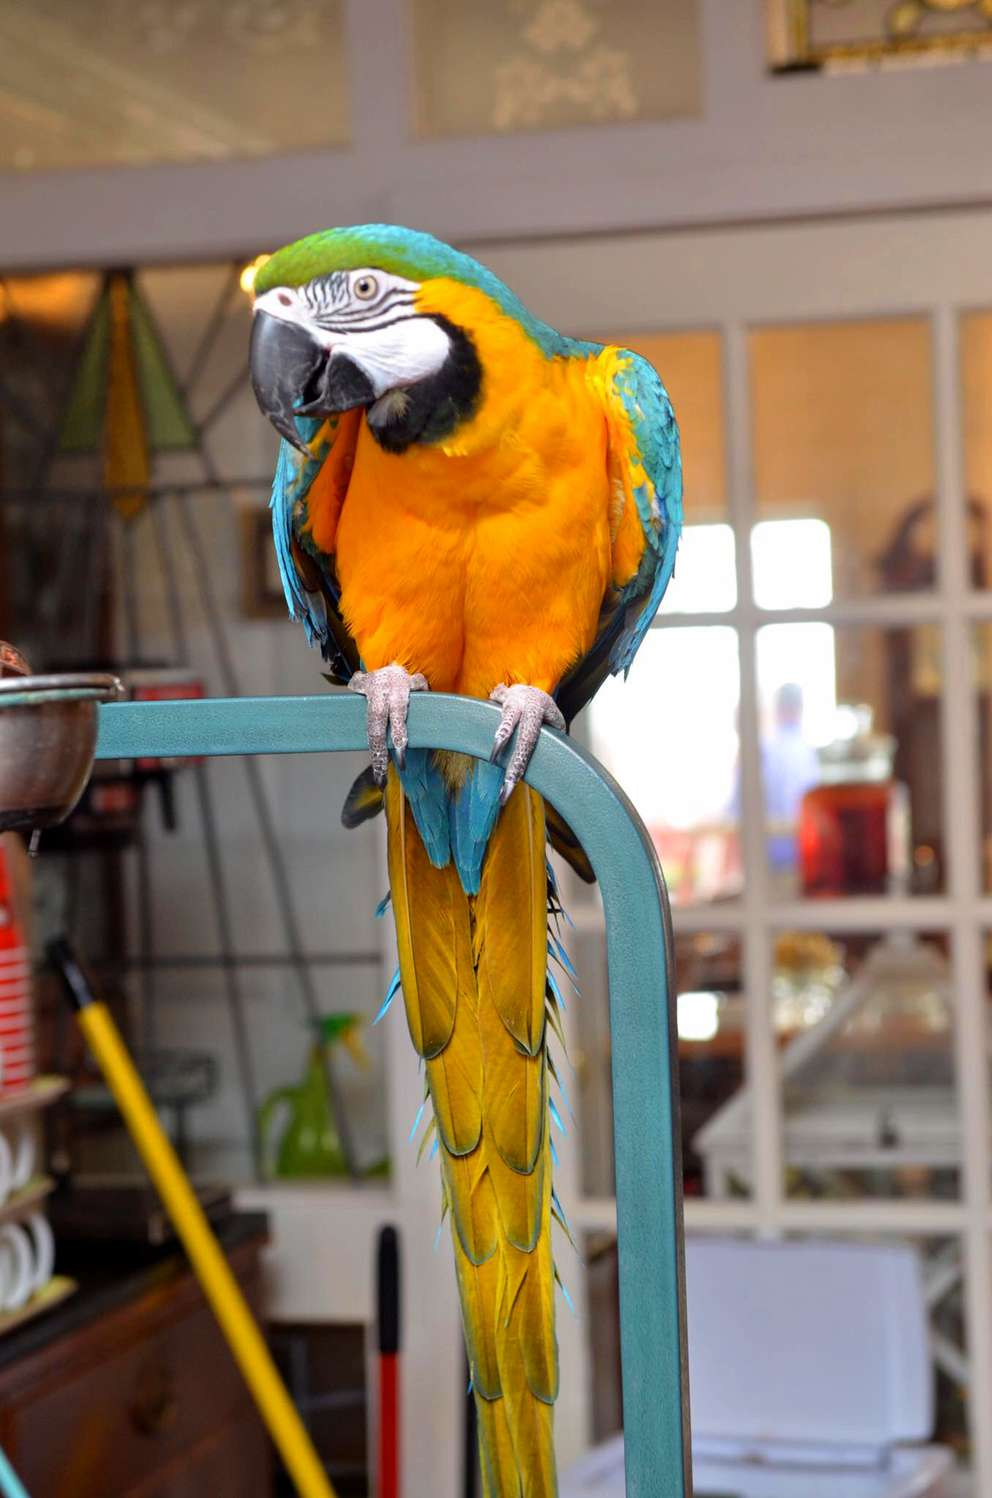 JoJo, a blue and gold macaw, became a well known character at the Driftwood Inn before the hotel was destroyed by Hurricane Michael last year. The parrot was found dead in the Driftwood following the storm. (Courtesy of Shawna Wood)